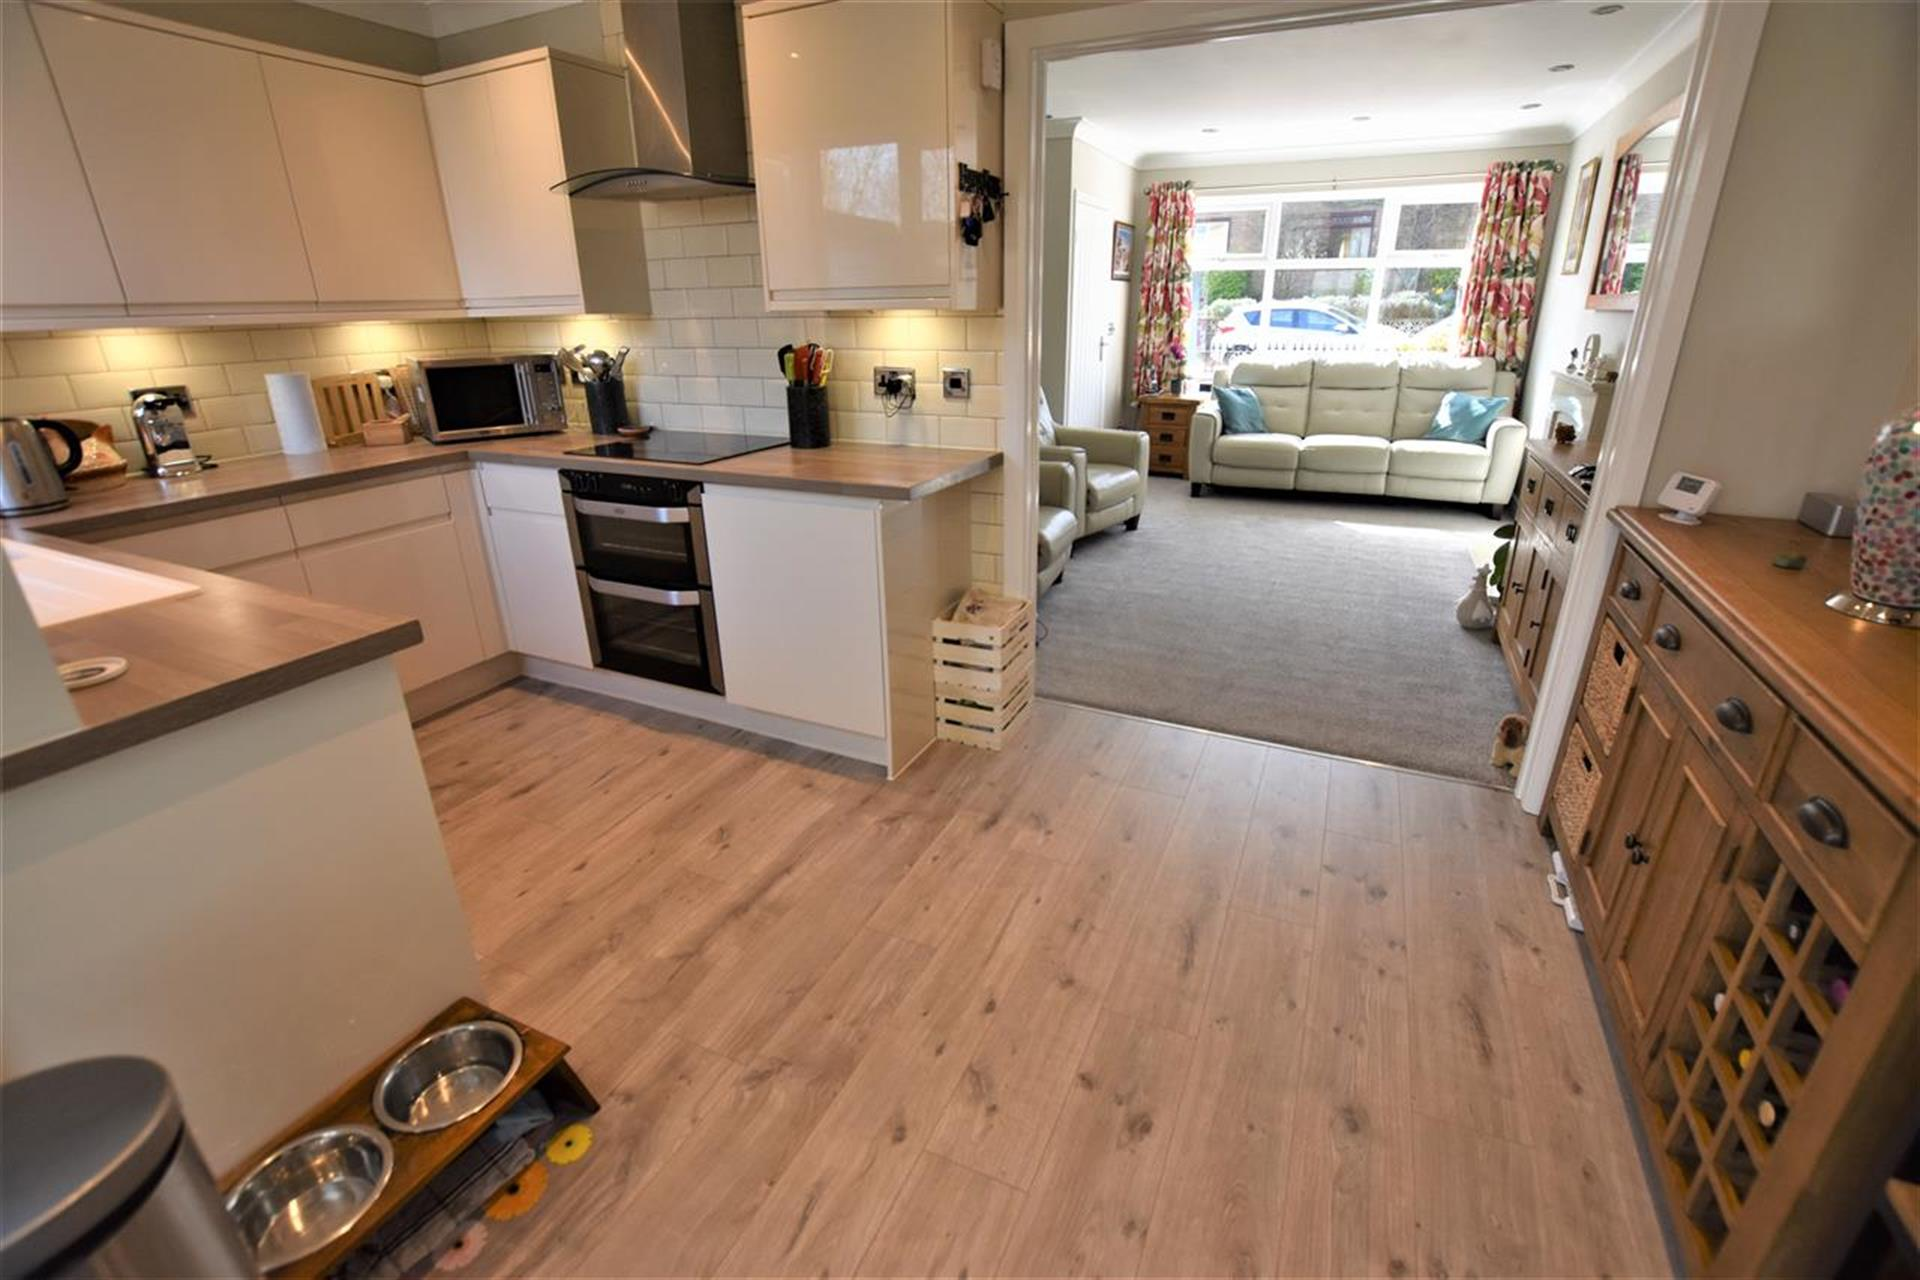 3 Bedroom Semi-detached House For Sale - Kitchen/Dining Area